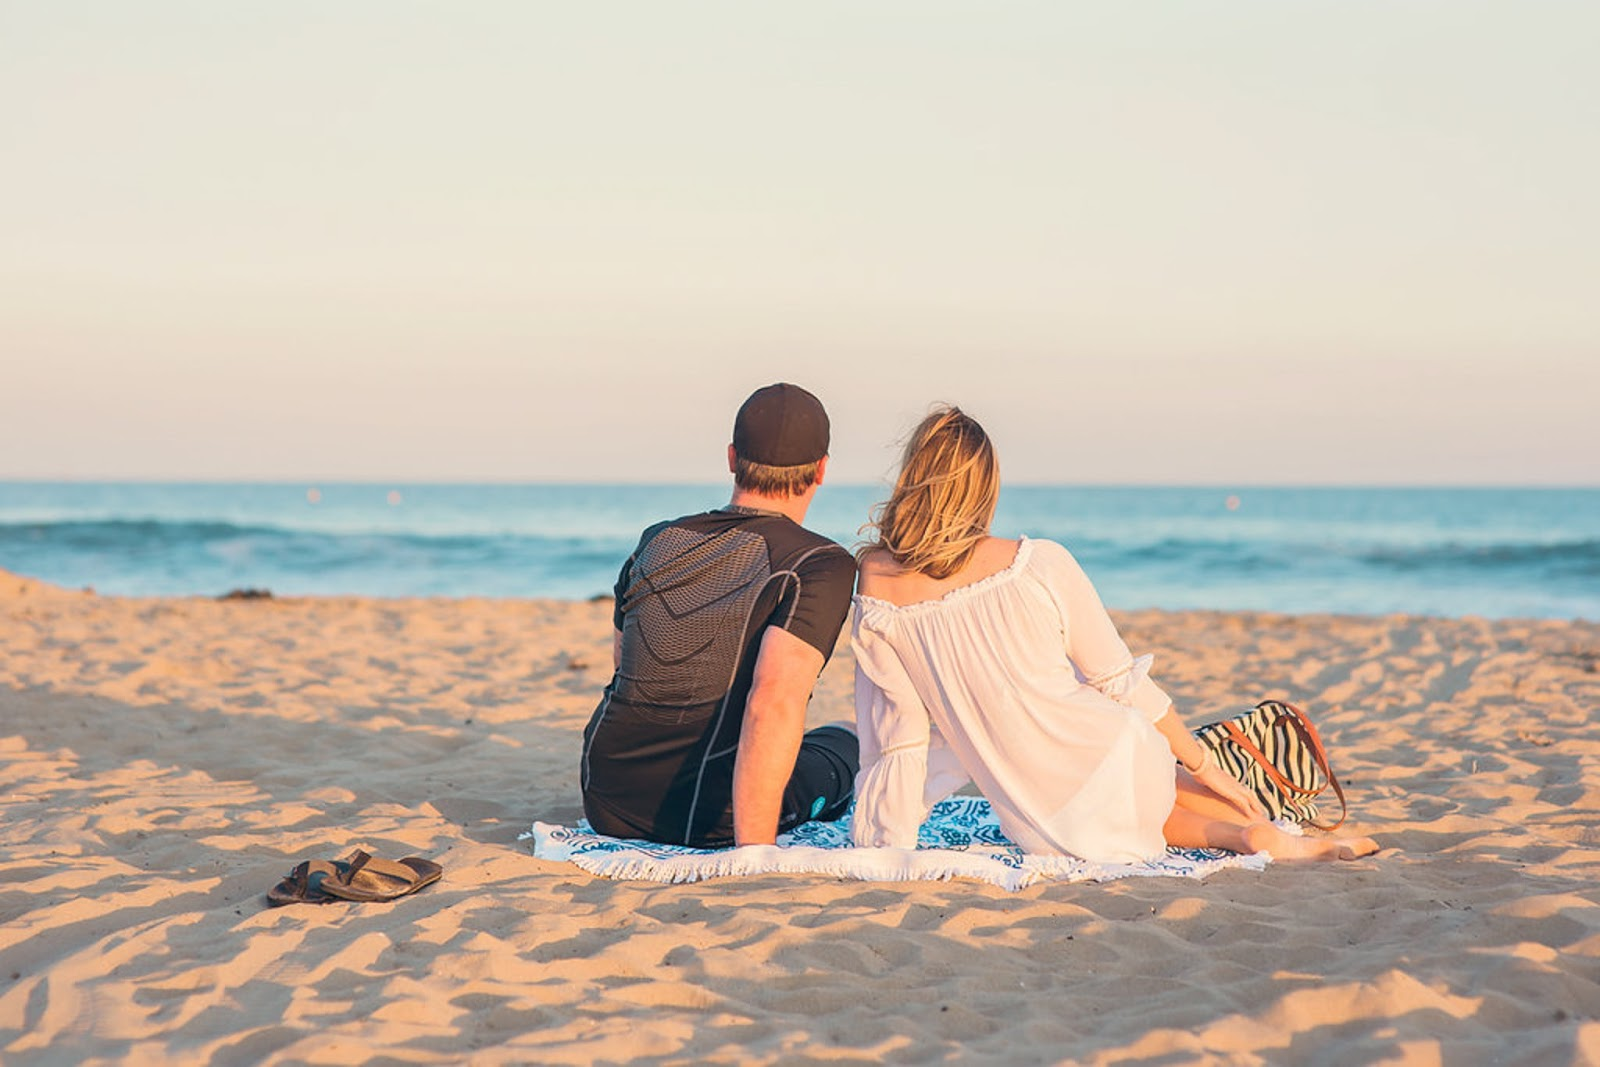 A man and woman sit on a sandy beach and look at ocean waves.